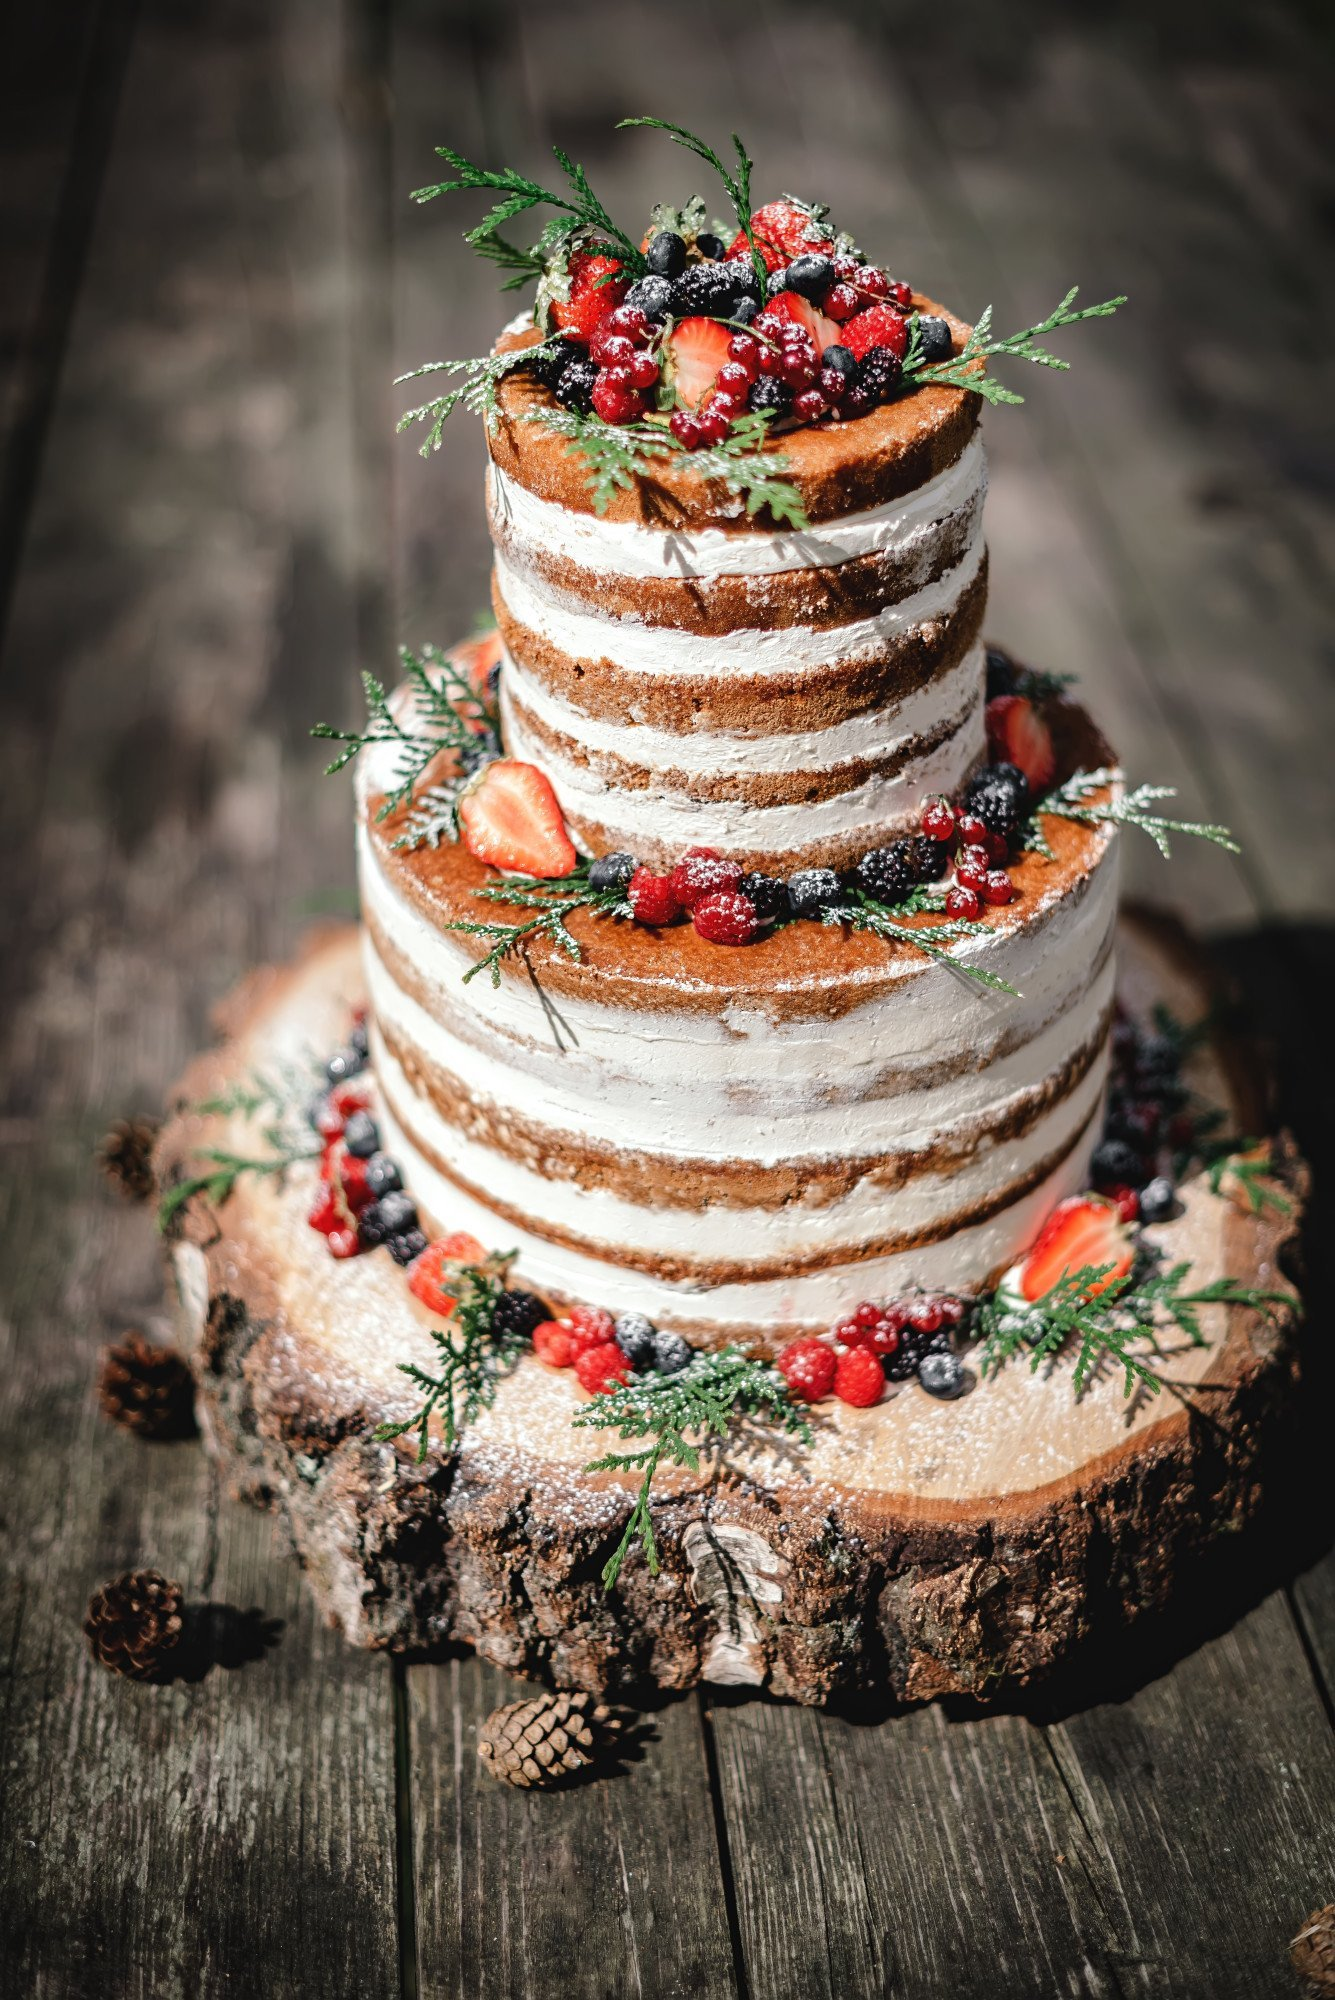 Something Sweet: 9 Designs for Rustic Wedding Cakes Too